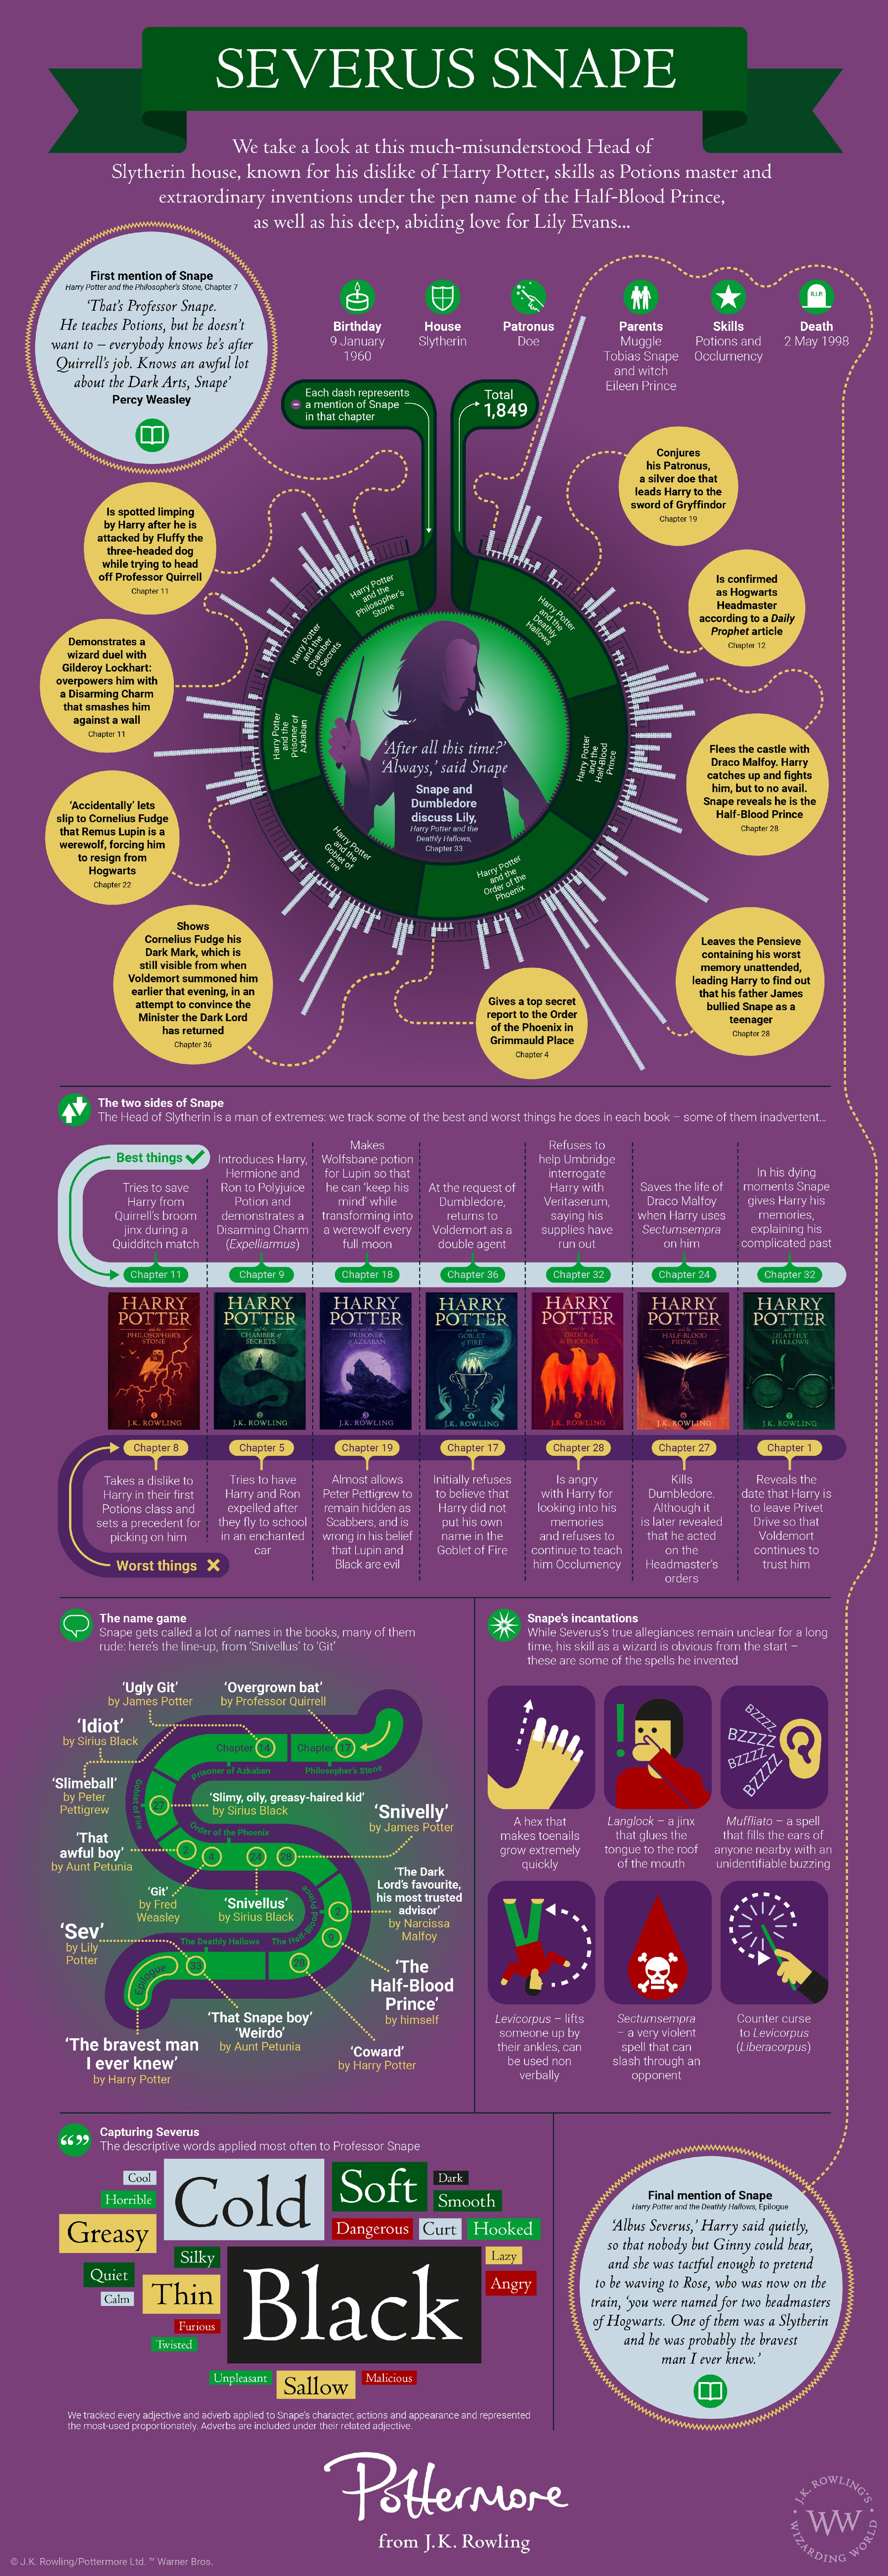 All About Severus Snape Wizarding World